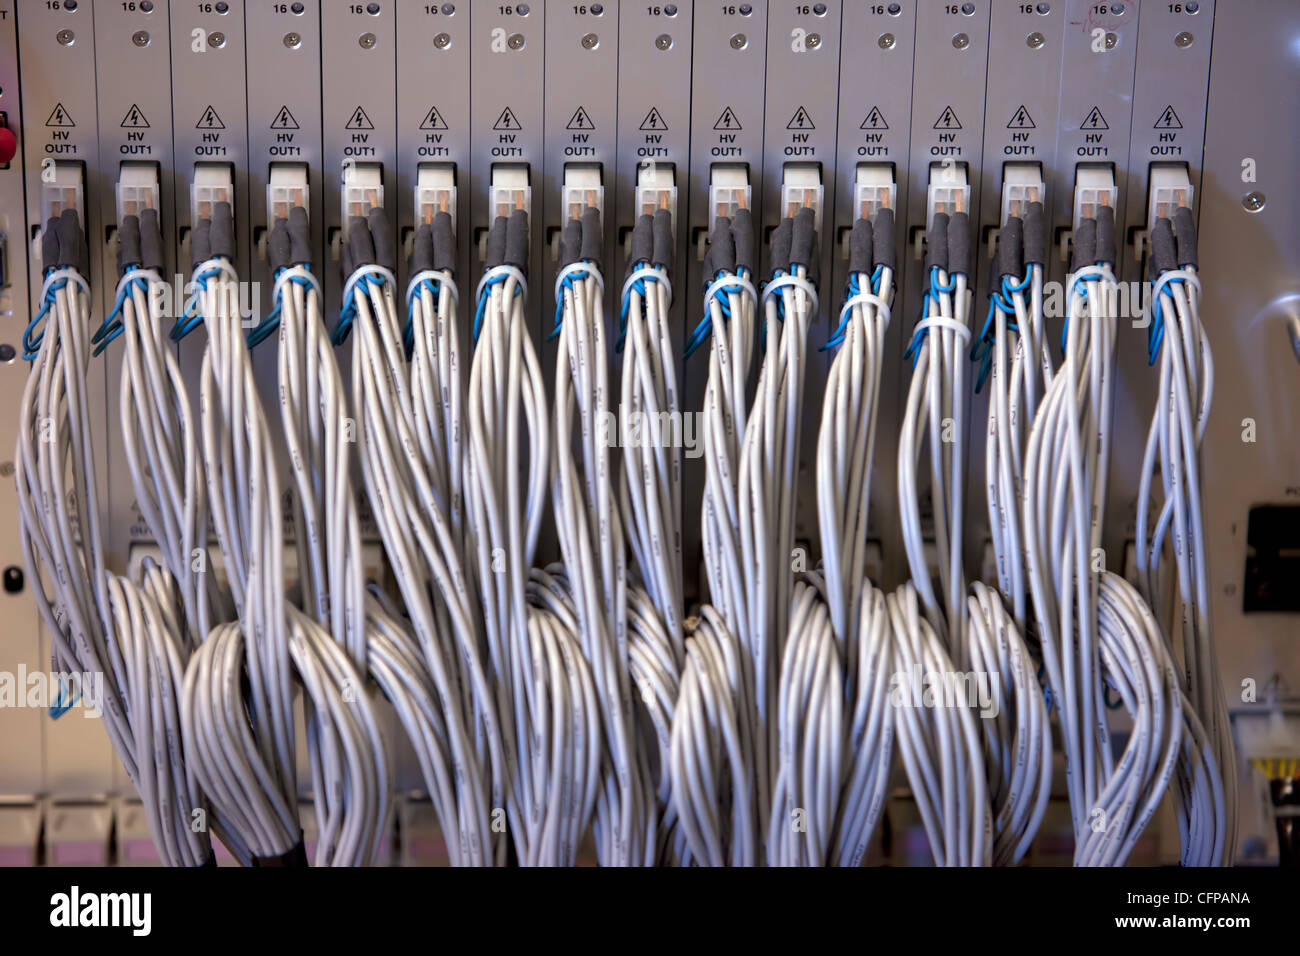 Wiring Harness Stock Photos Images Alamy Wire Engineering Cosmic Ray Fluorescence Detectors Mirror Array Scientific Observatory Electronic Equipment In Delta